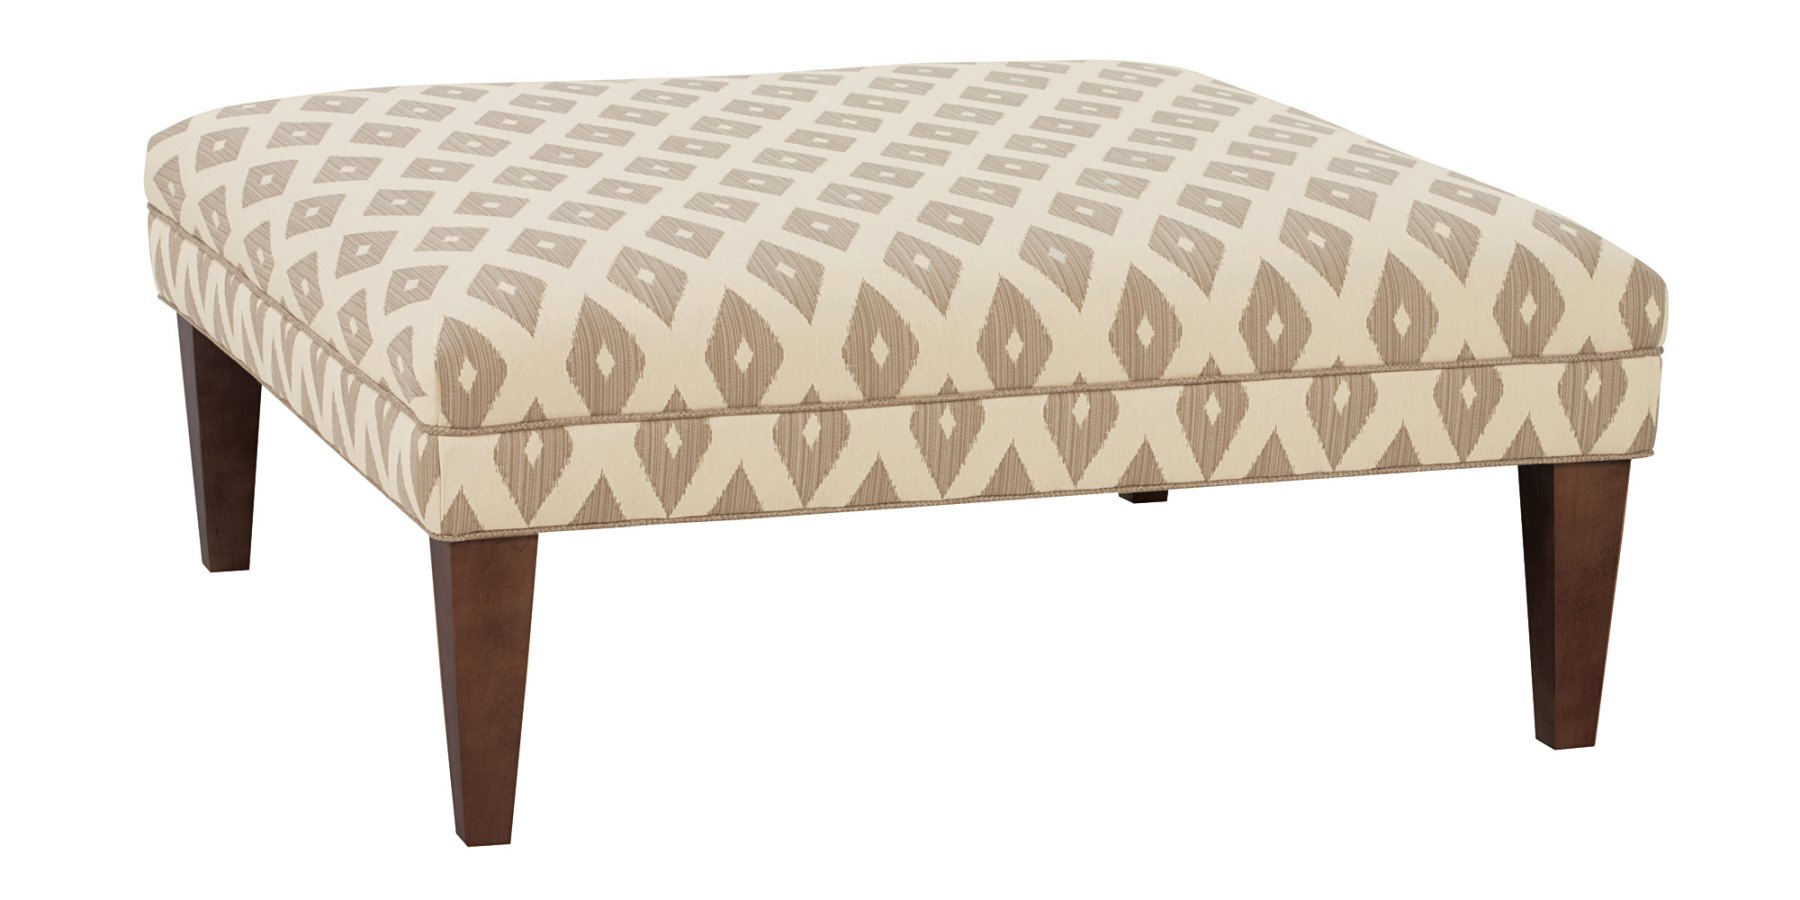 Fabric-Ottoman-Coffee-Table-I-have-no-idea-what-it-cost-but-whatever-it-was-it-is-very-much-worth-it-You-could-literally-display-the-open-award-cases-comfortably-un (Image 5 of 17)